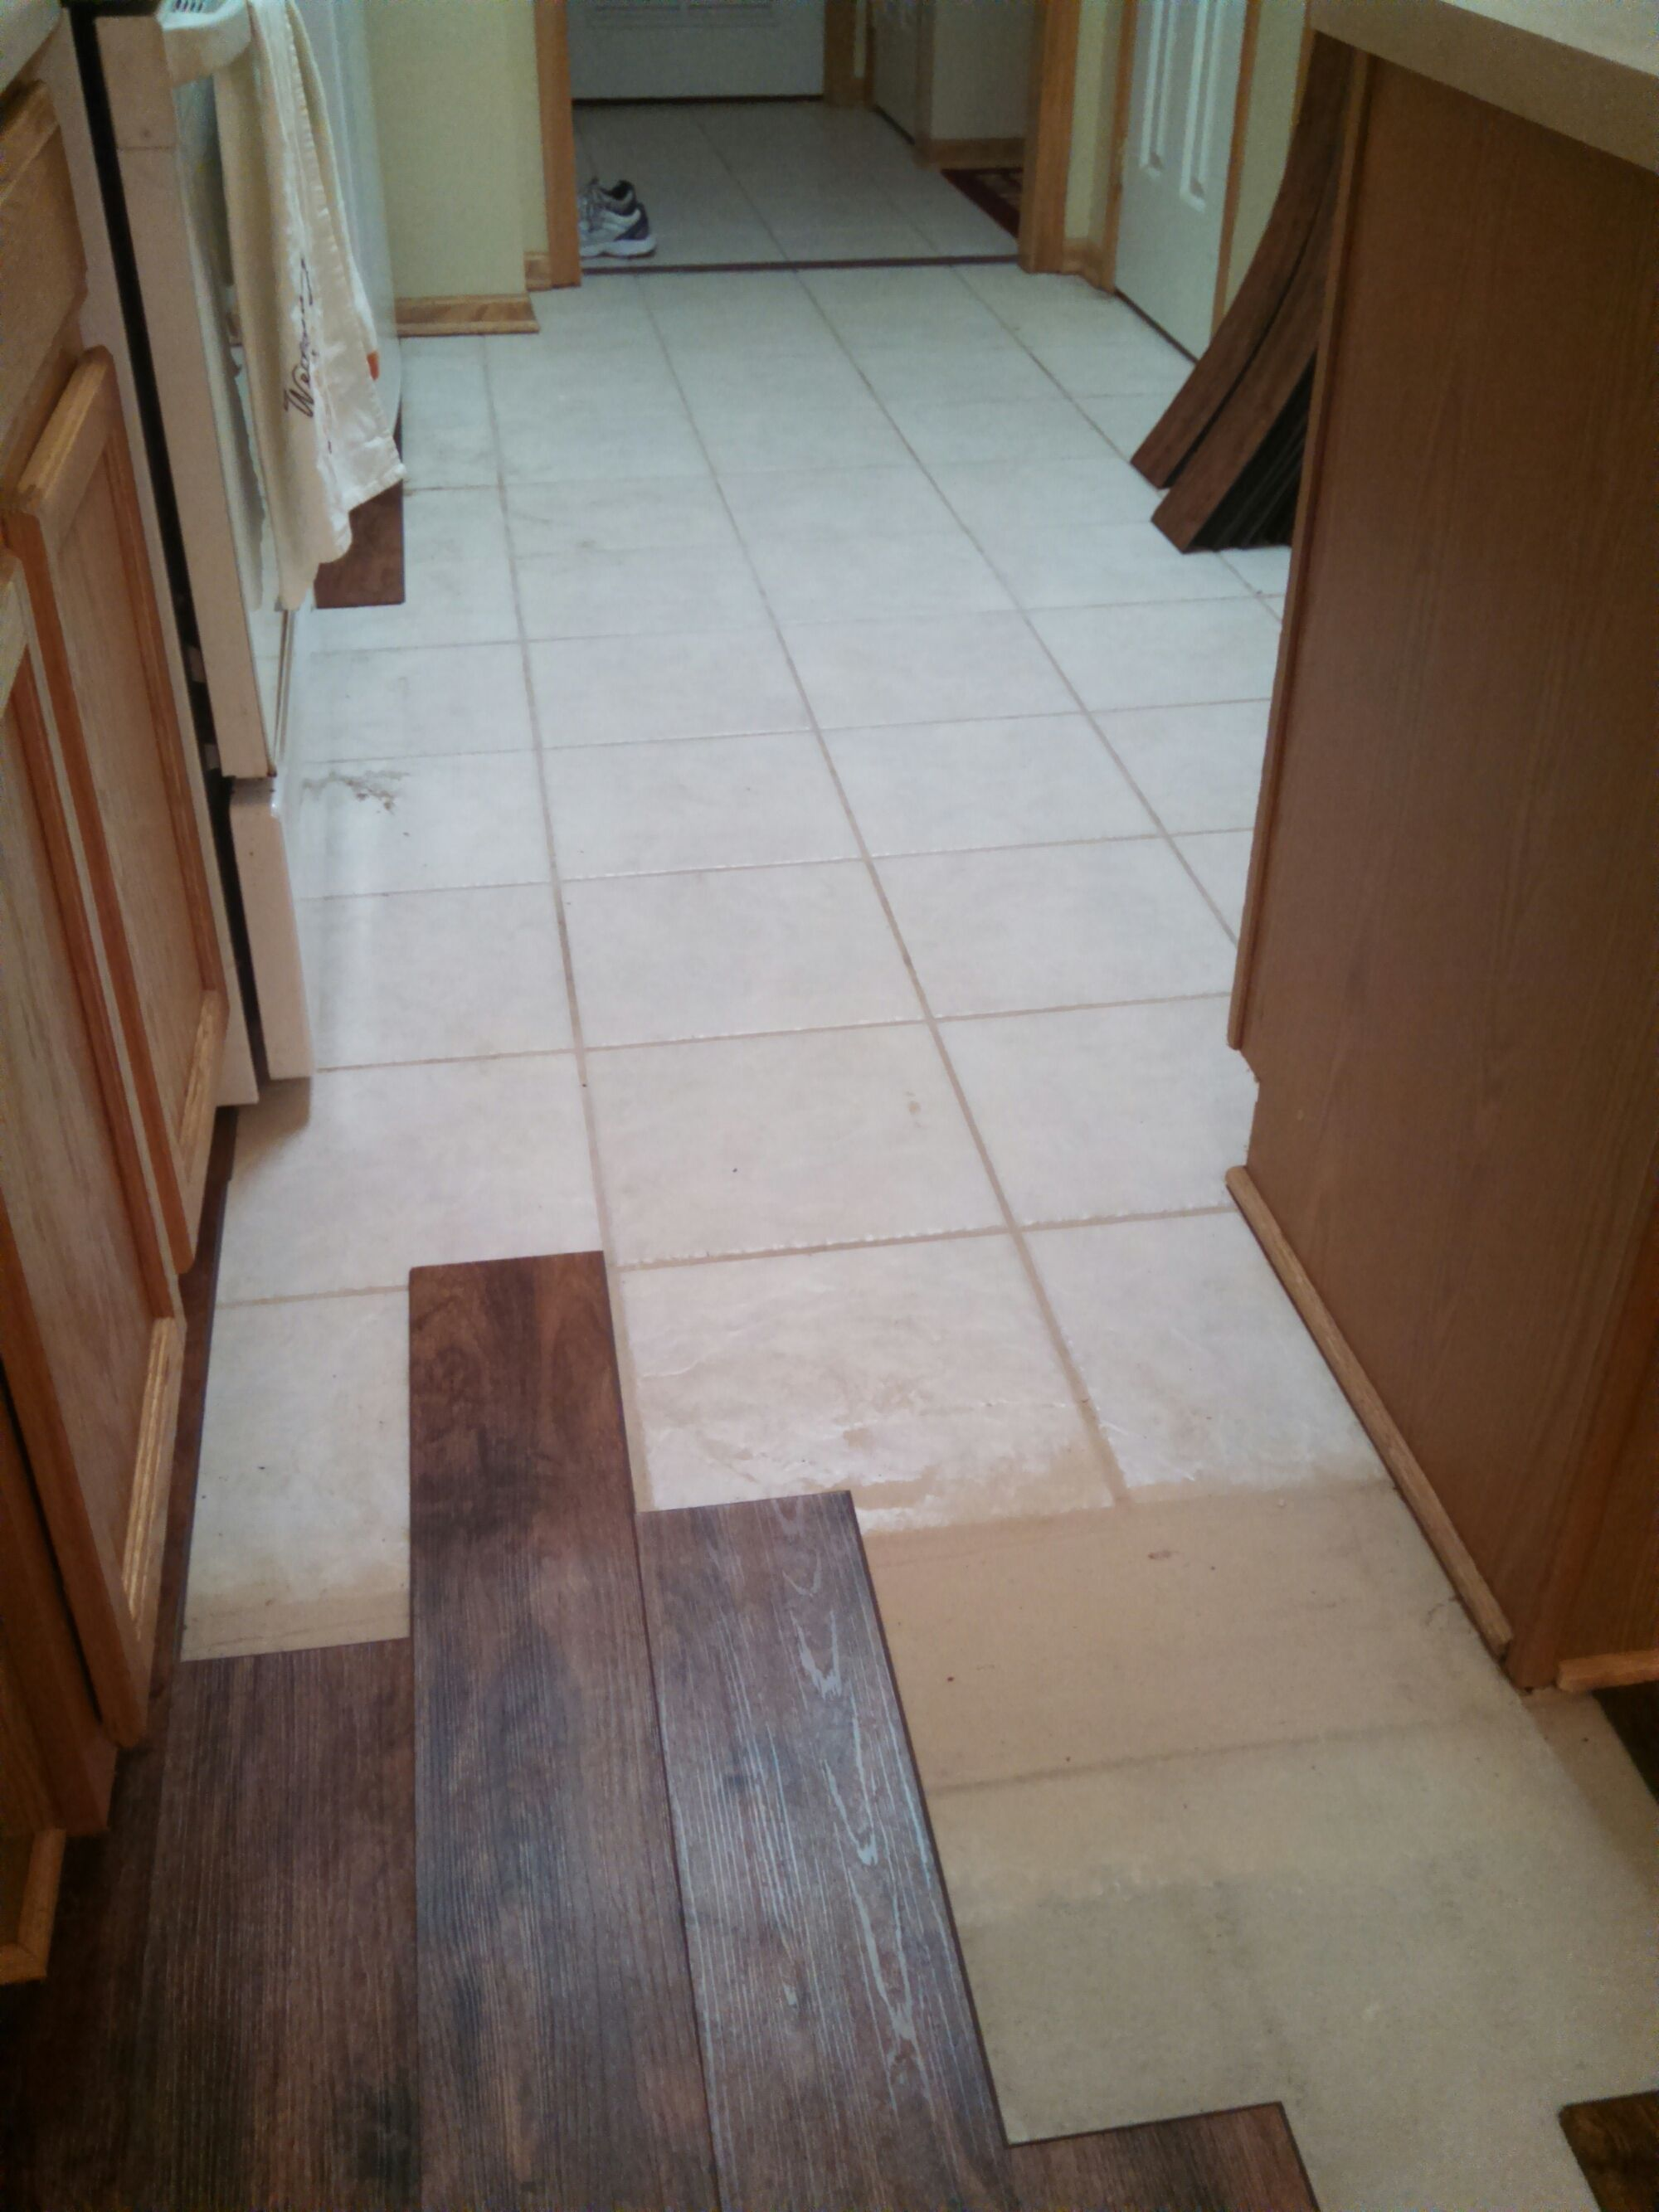 Laminate Wood Flooring Over Ceramic Tile